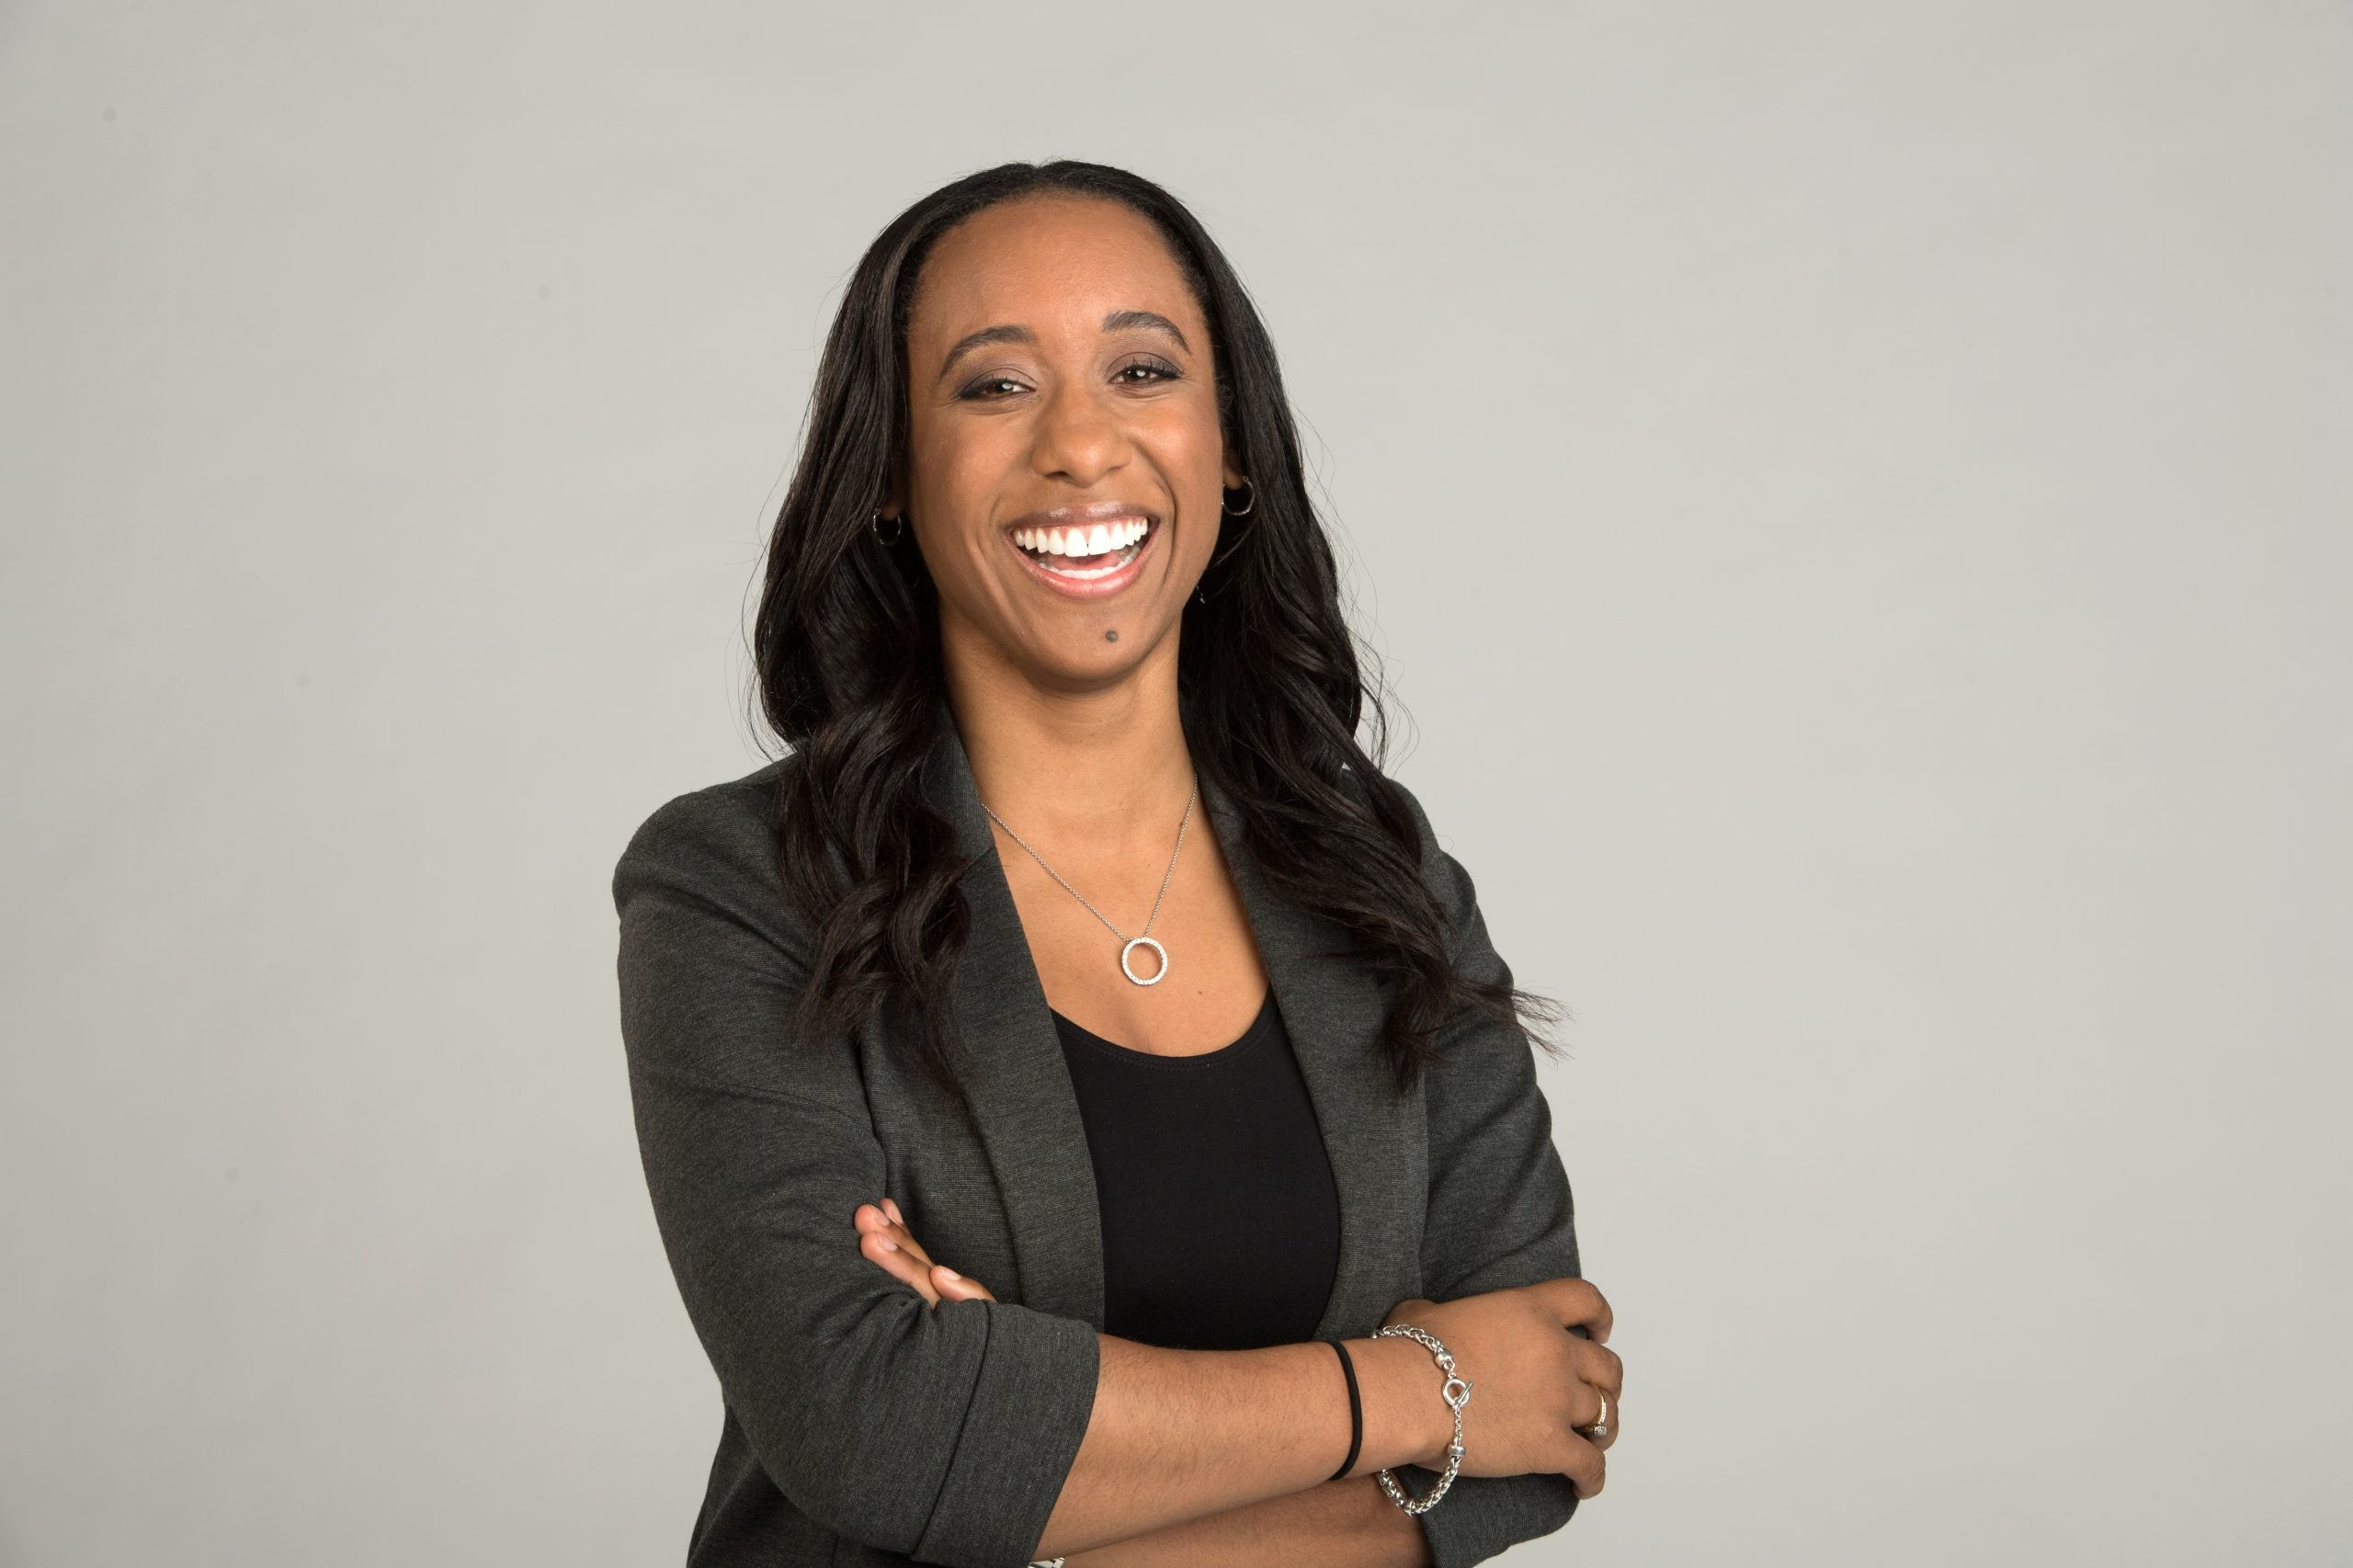 Black Girl Brilliance: Gianina Thompson Is The New Communications Director For LeBron James's SpringHill Company